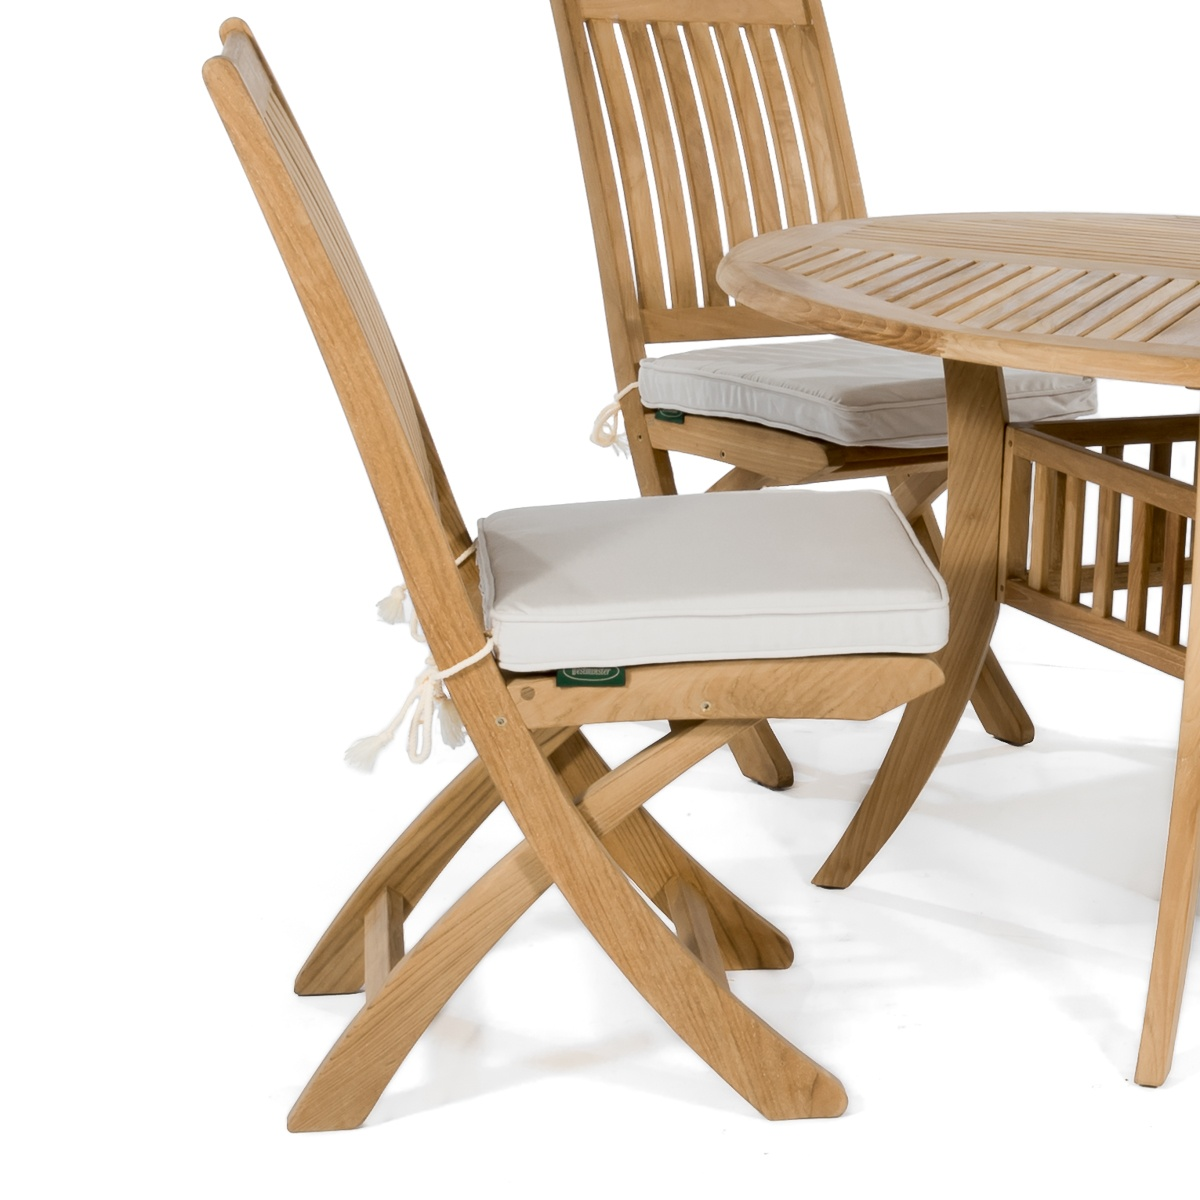 Sunbrella Dining Chair Cushion Westminster Teak